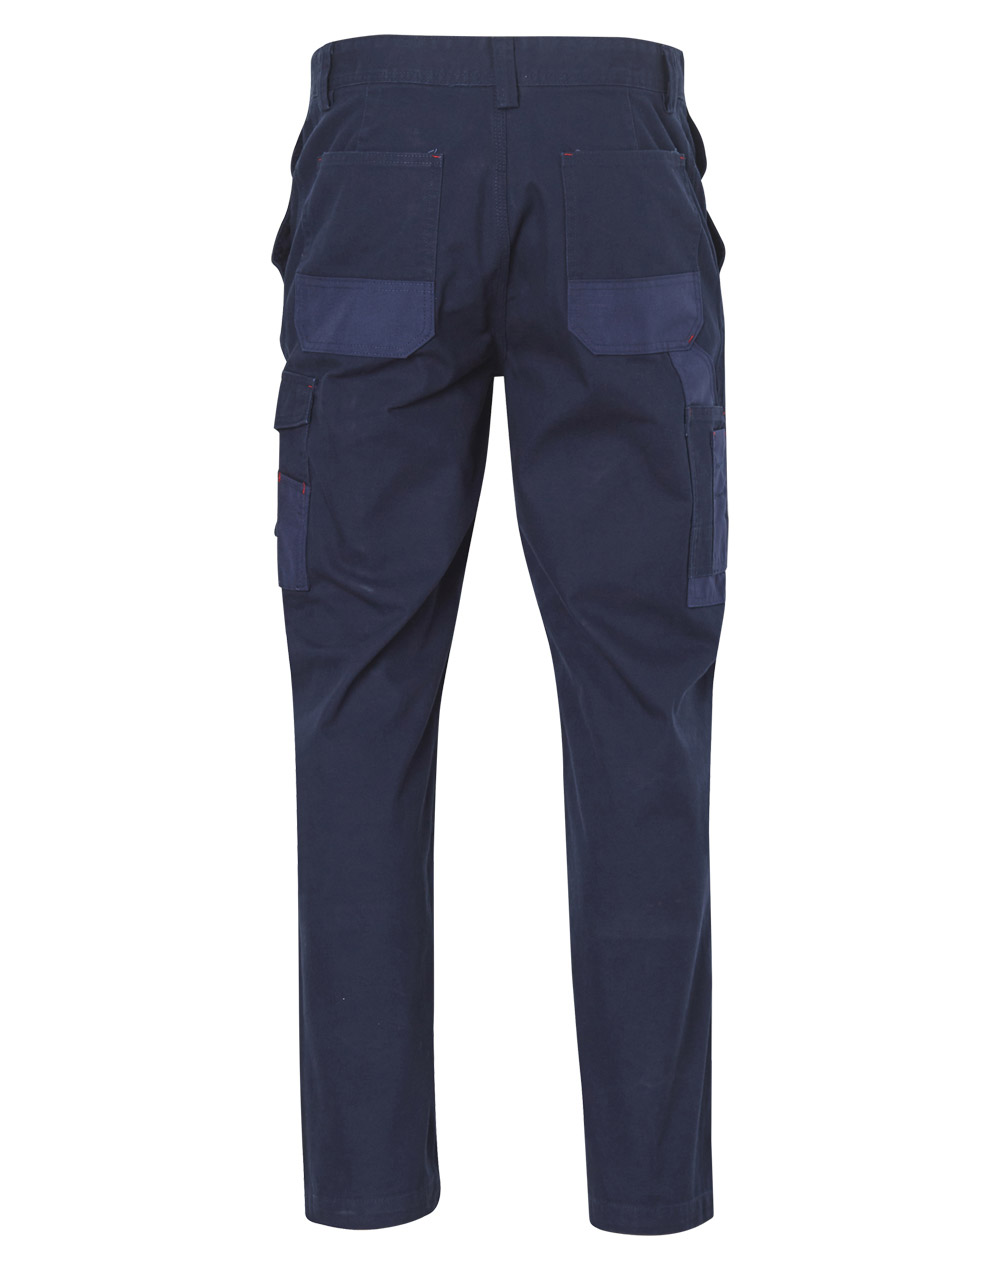 https://s3-ap-southeast-1.amazonaws.com/ws-imgs/WORKWEAR/WP09_Navy_Back.jpg